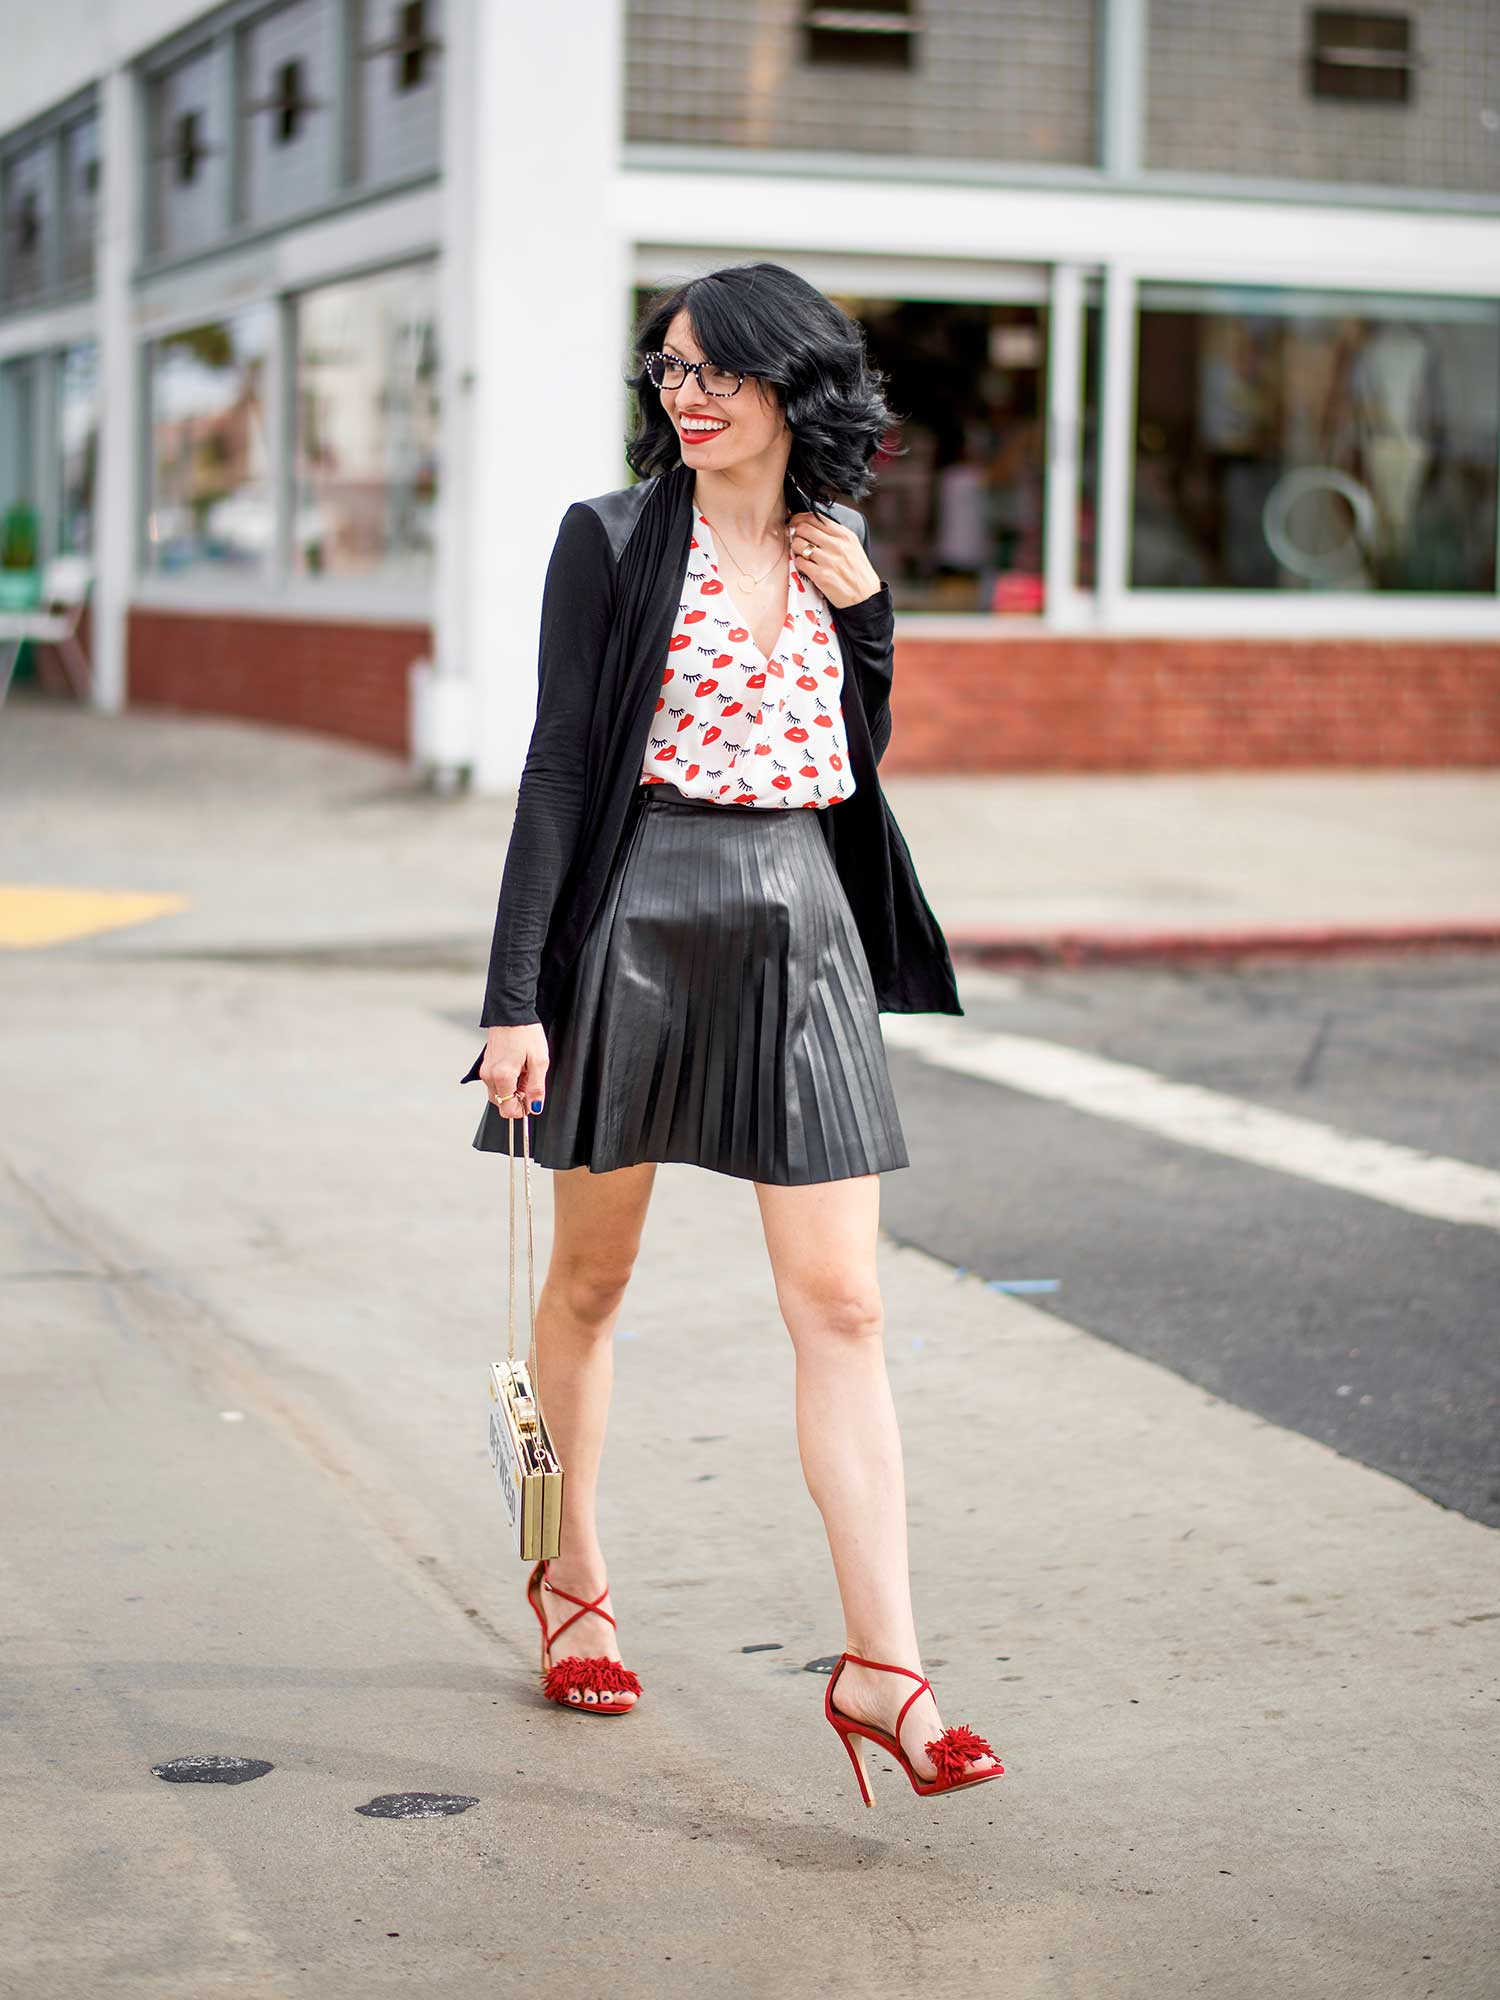 jenna-pilant-lucky-little-mustardseed-san-diego-style-blogger-san-diego-fashion-blogger-how-to-transition-from-summer-to-fall-clothing-3